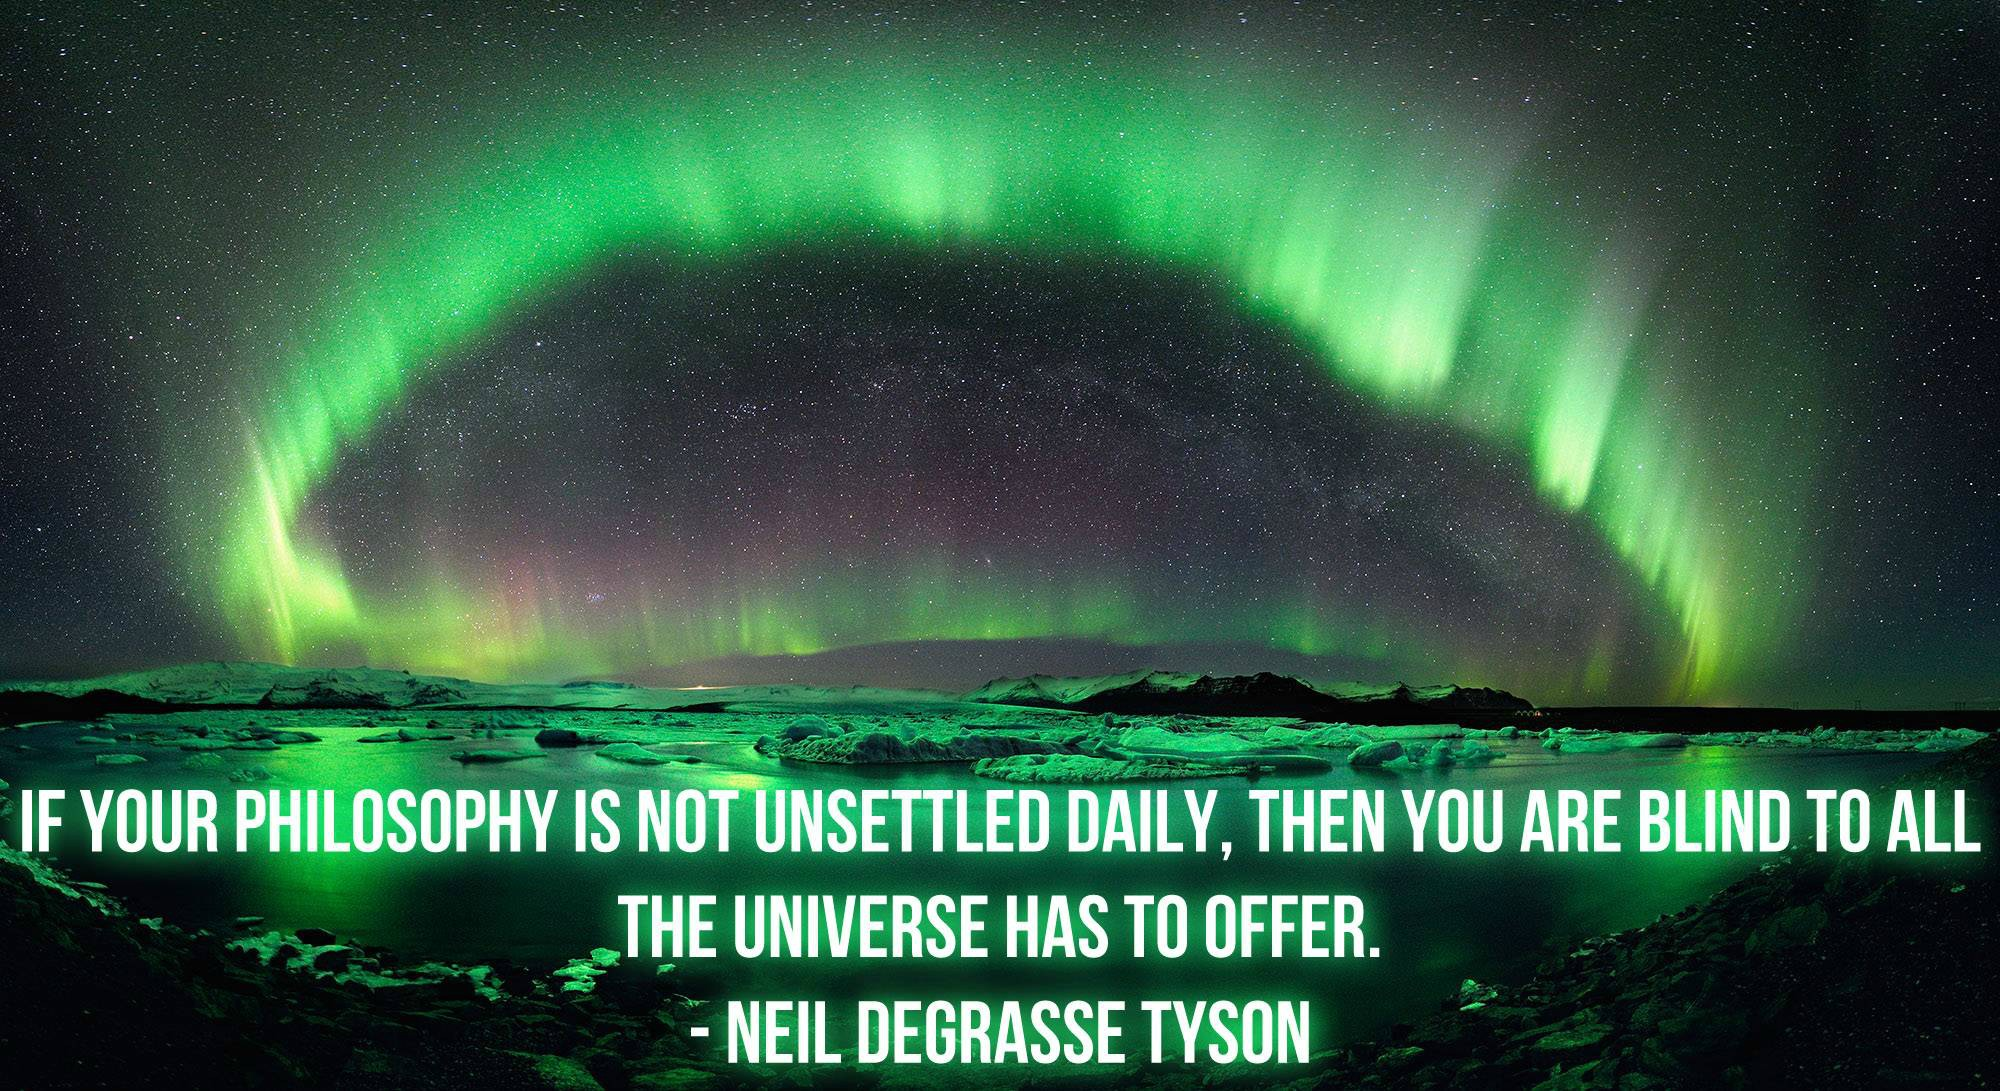 Neil Degrasse Tyson - Unsettled Philosophy